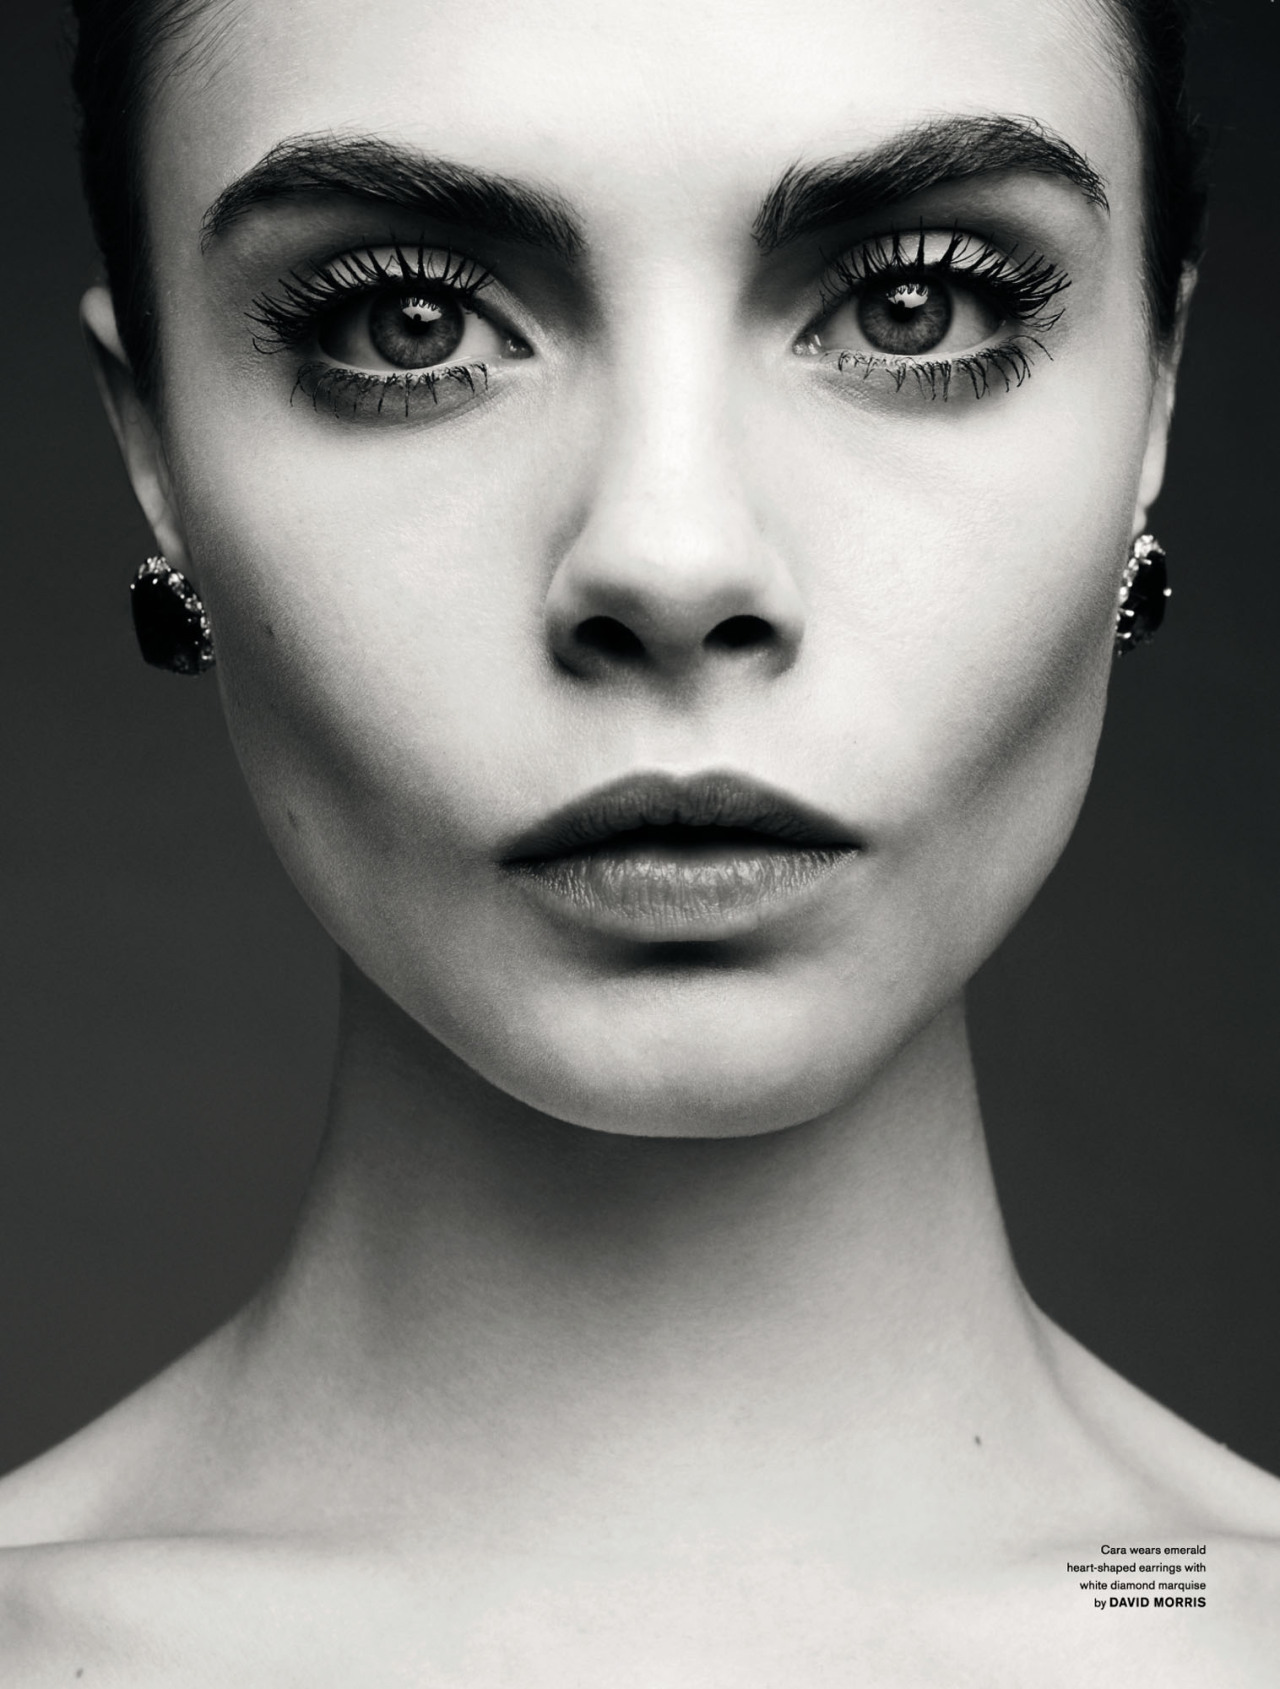 Cara Delevingne: The Girls - Love #9 by Solve Sundsbo, Spring/Summer 2013